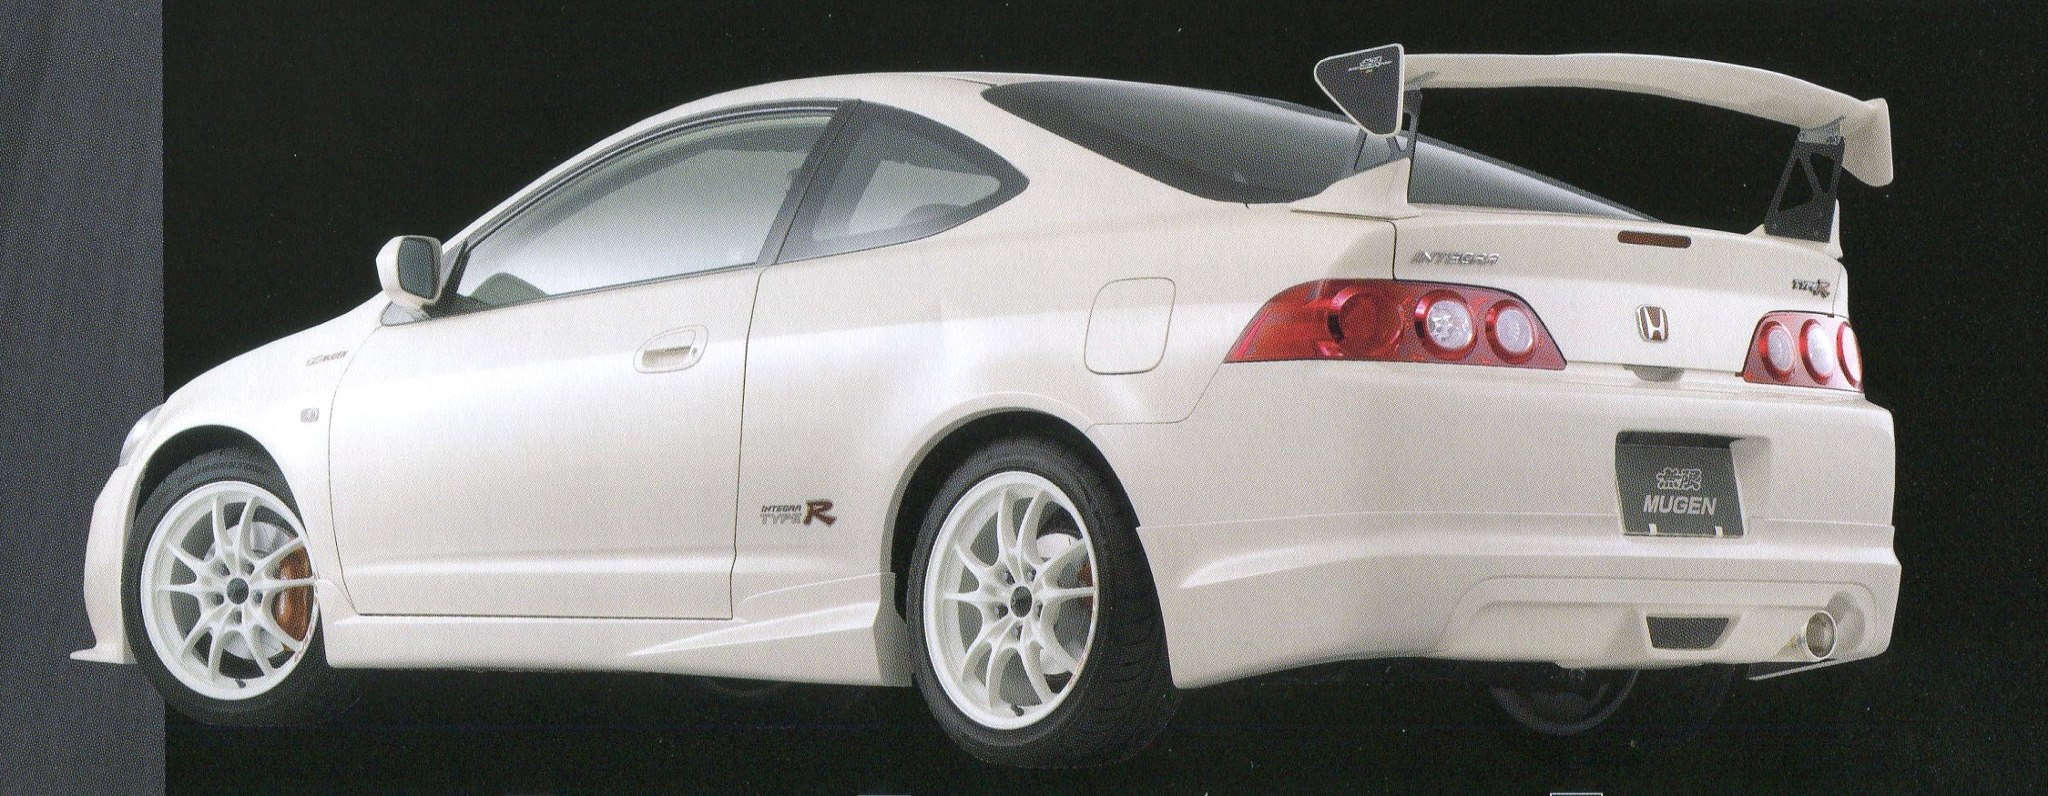 King Motorsports Official Blog Dc5 Rsx Mugen Aero S Body